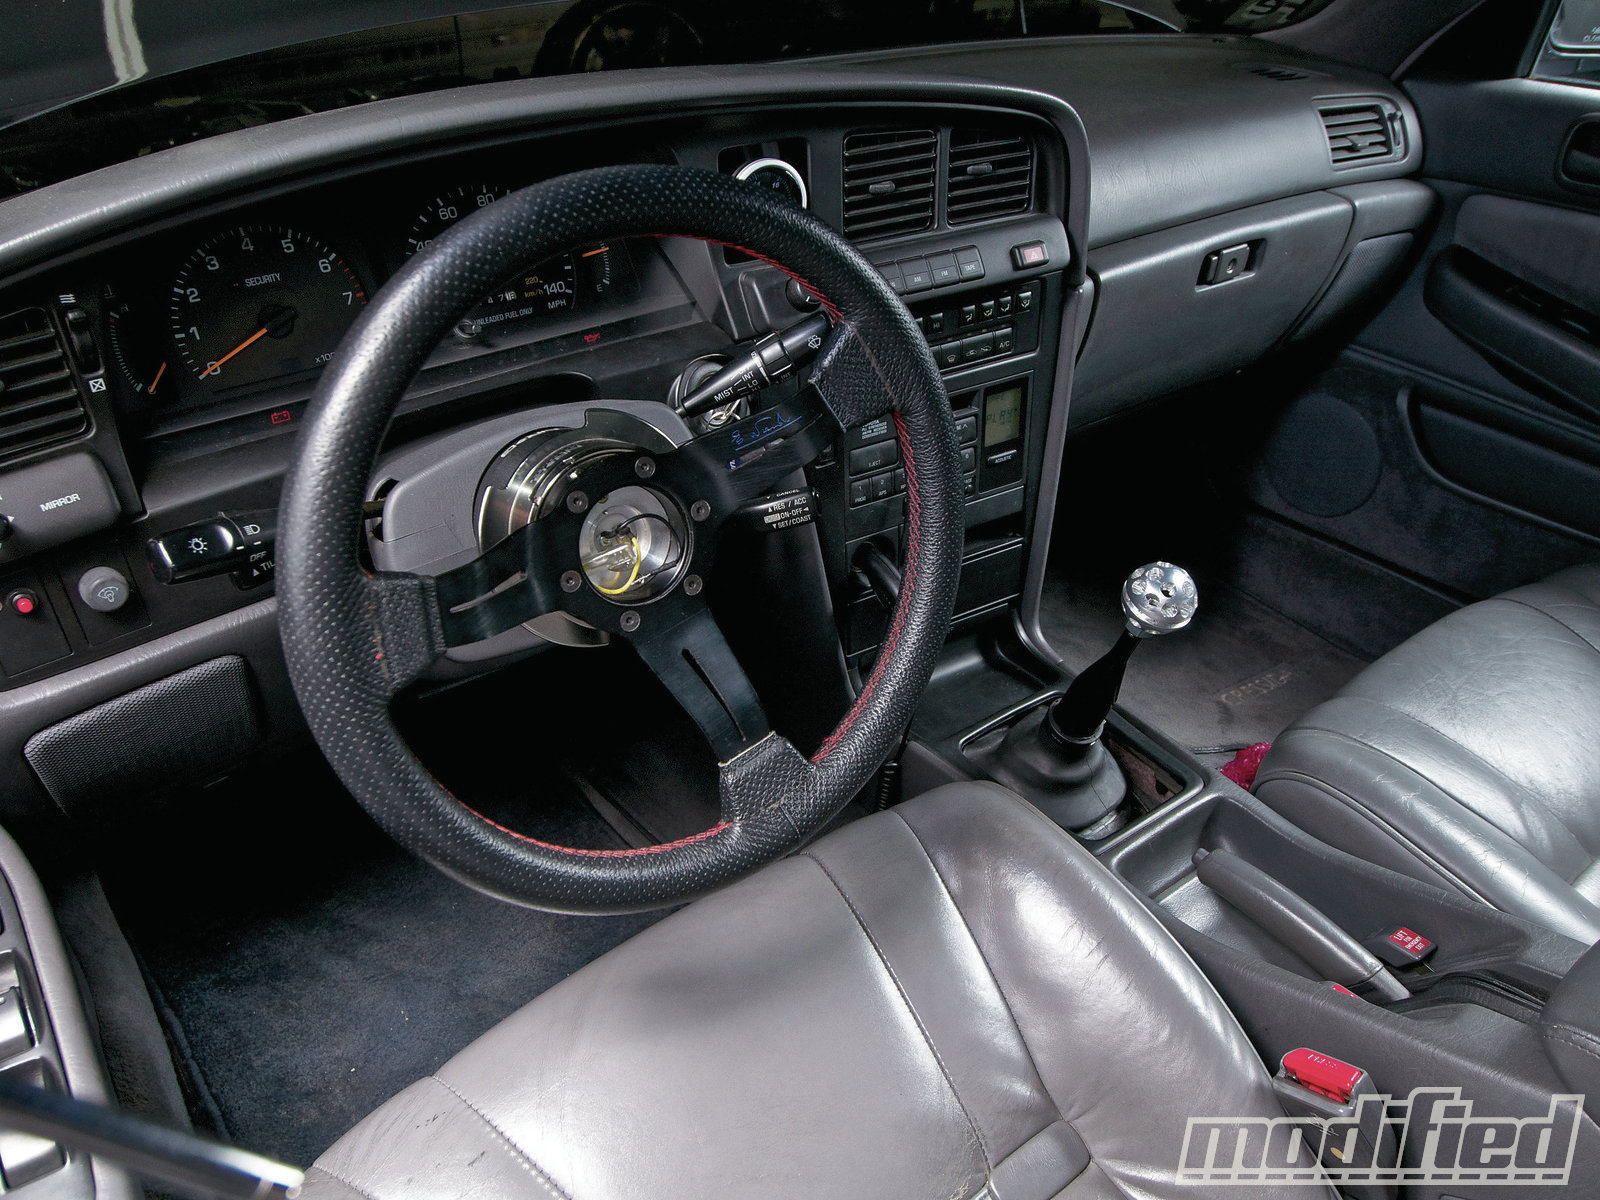 1991 Toyota Cressida - Wolf In Sheep's Clothing - Modified